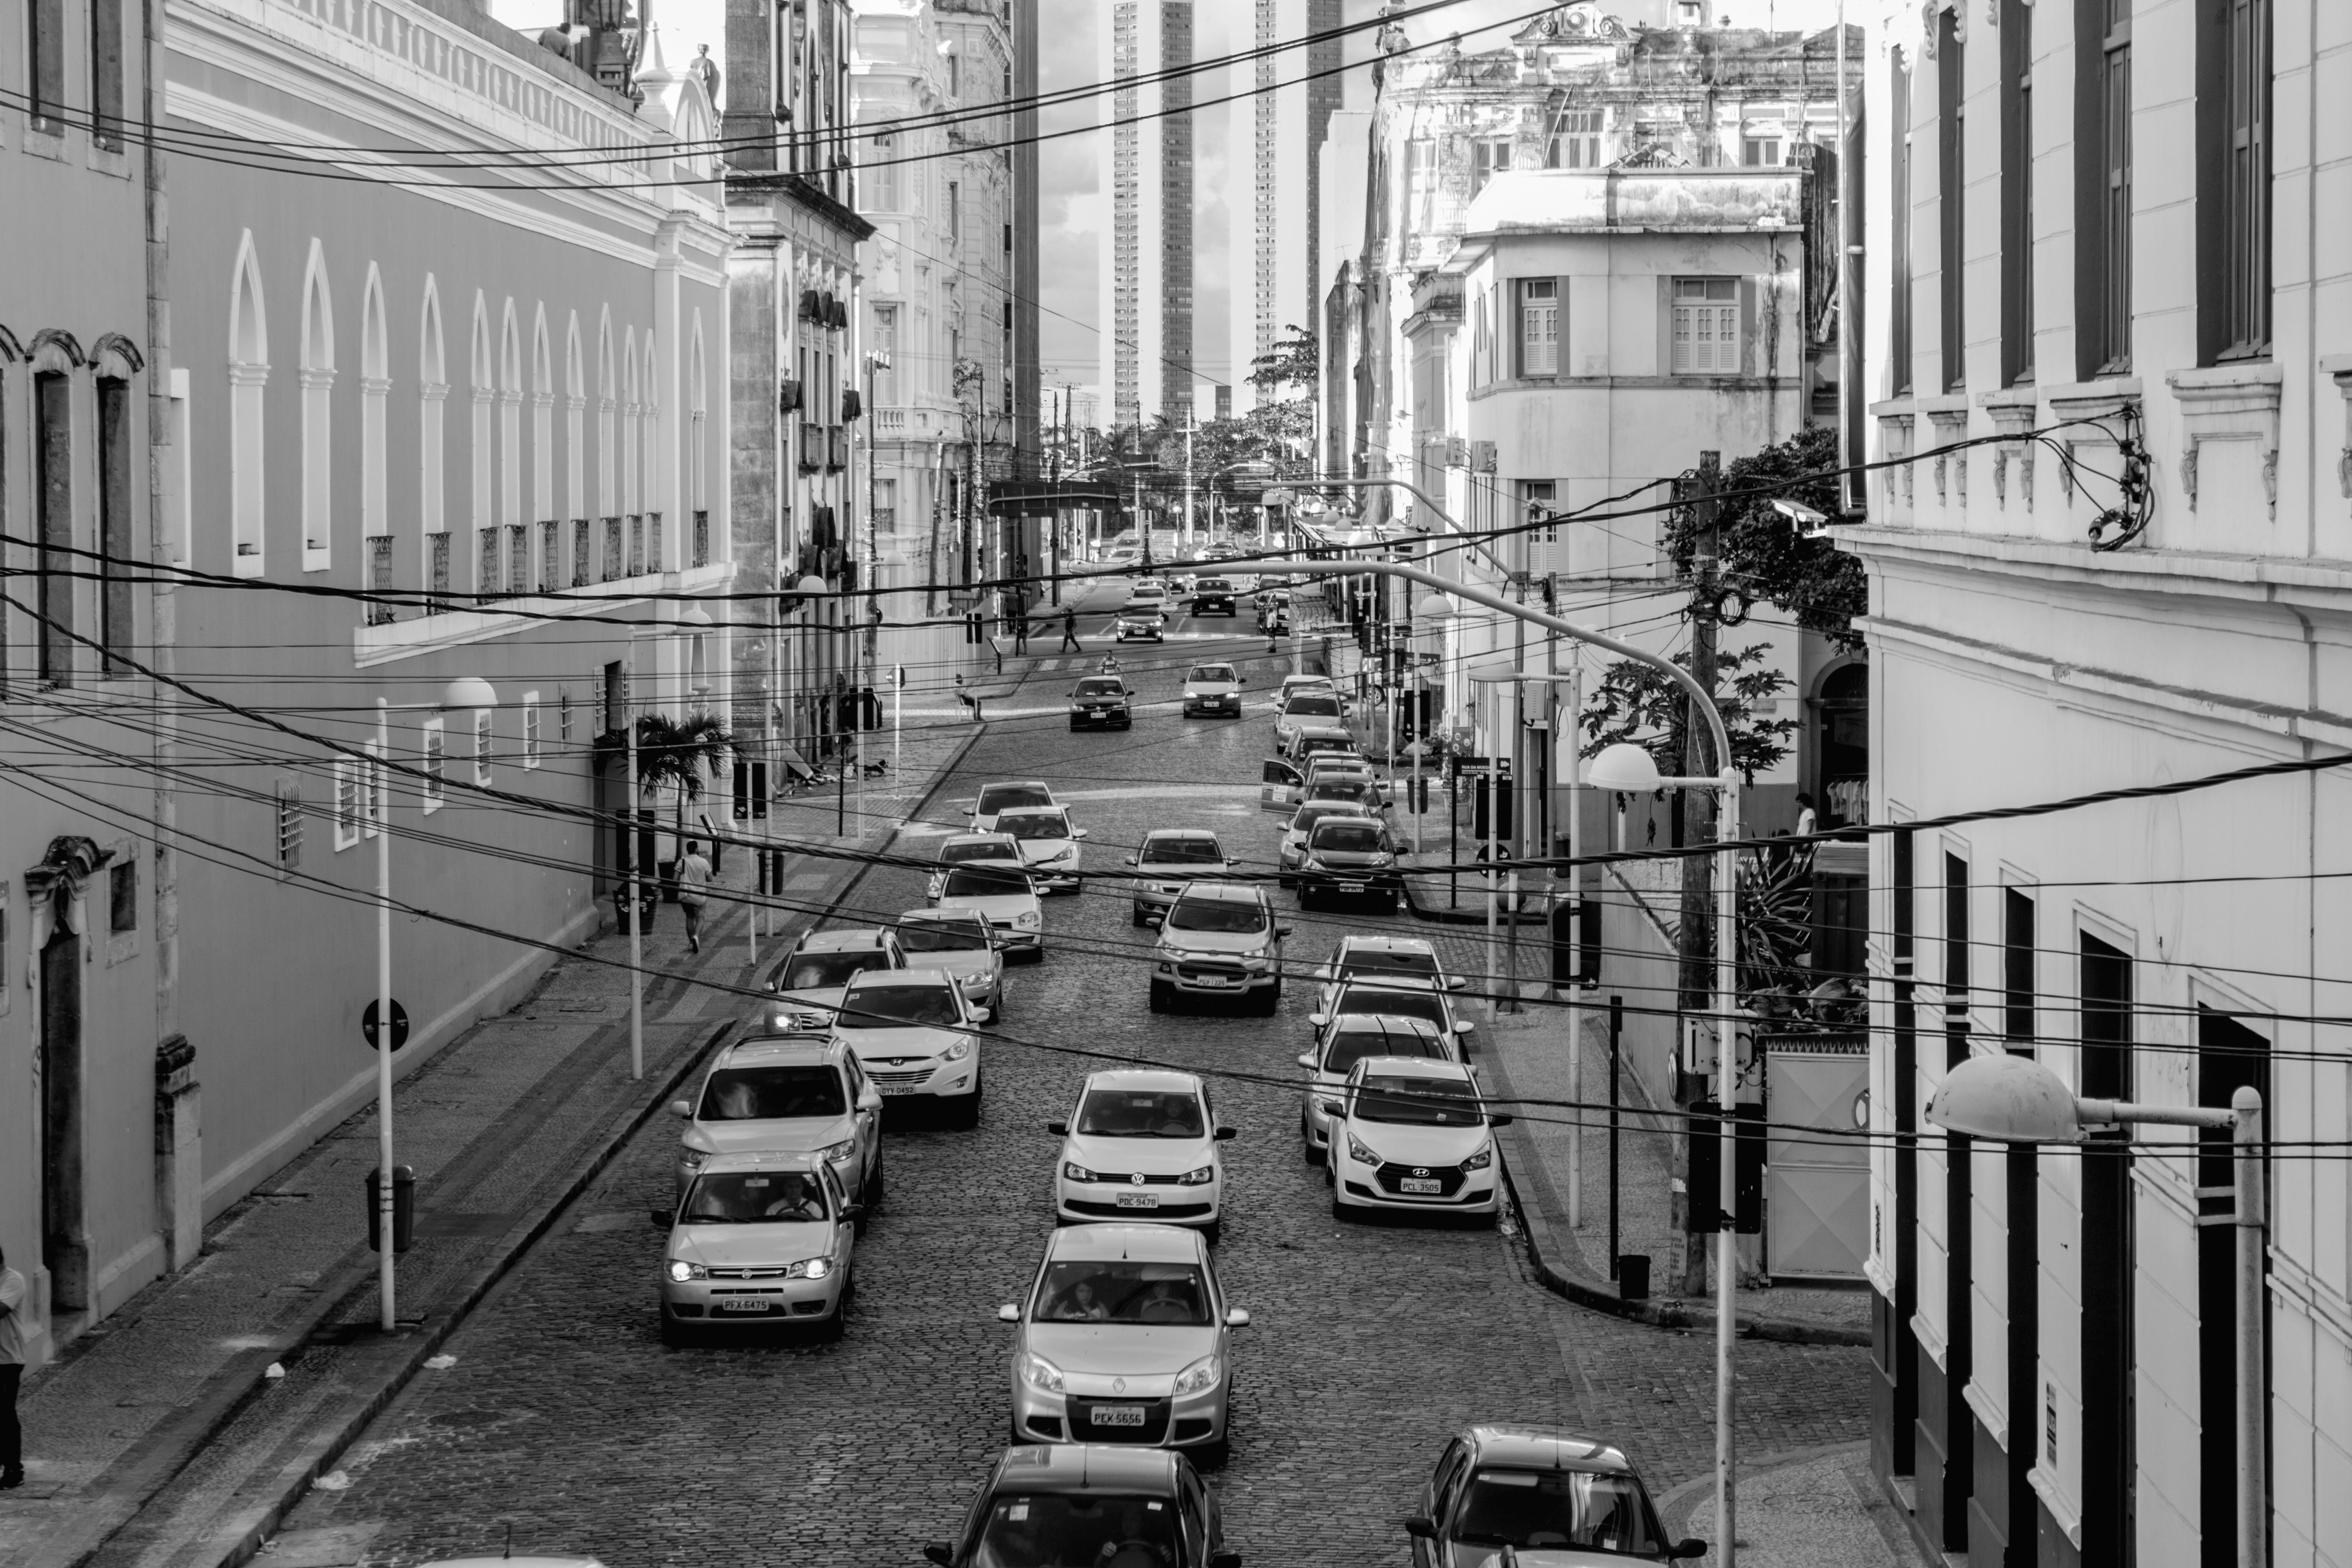 Grayscale Photo of Assorted Cars at the Middle of High Rise Buildings